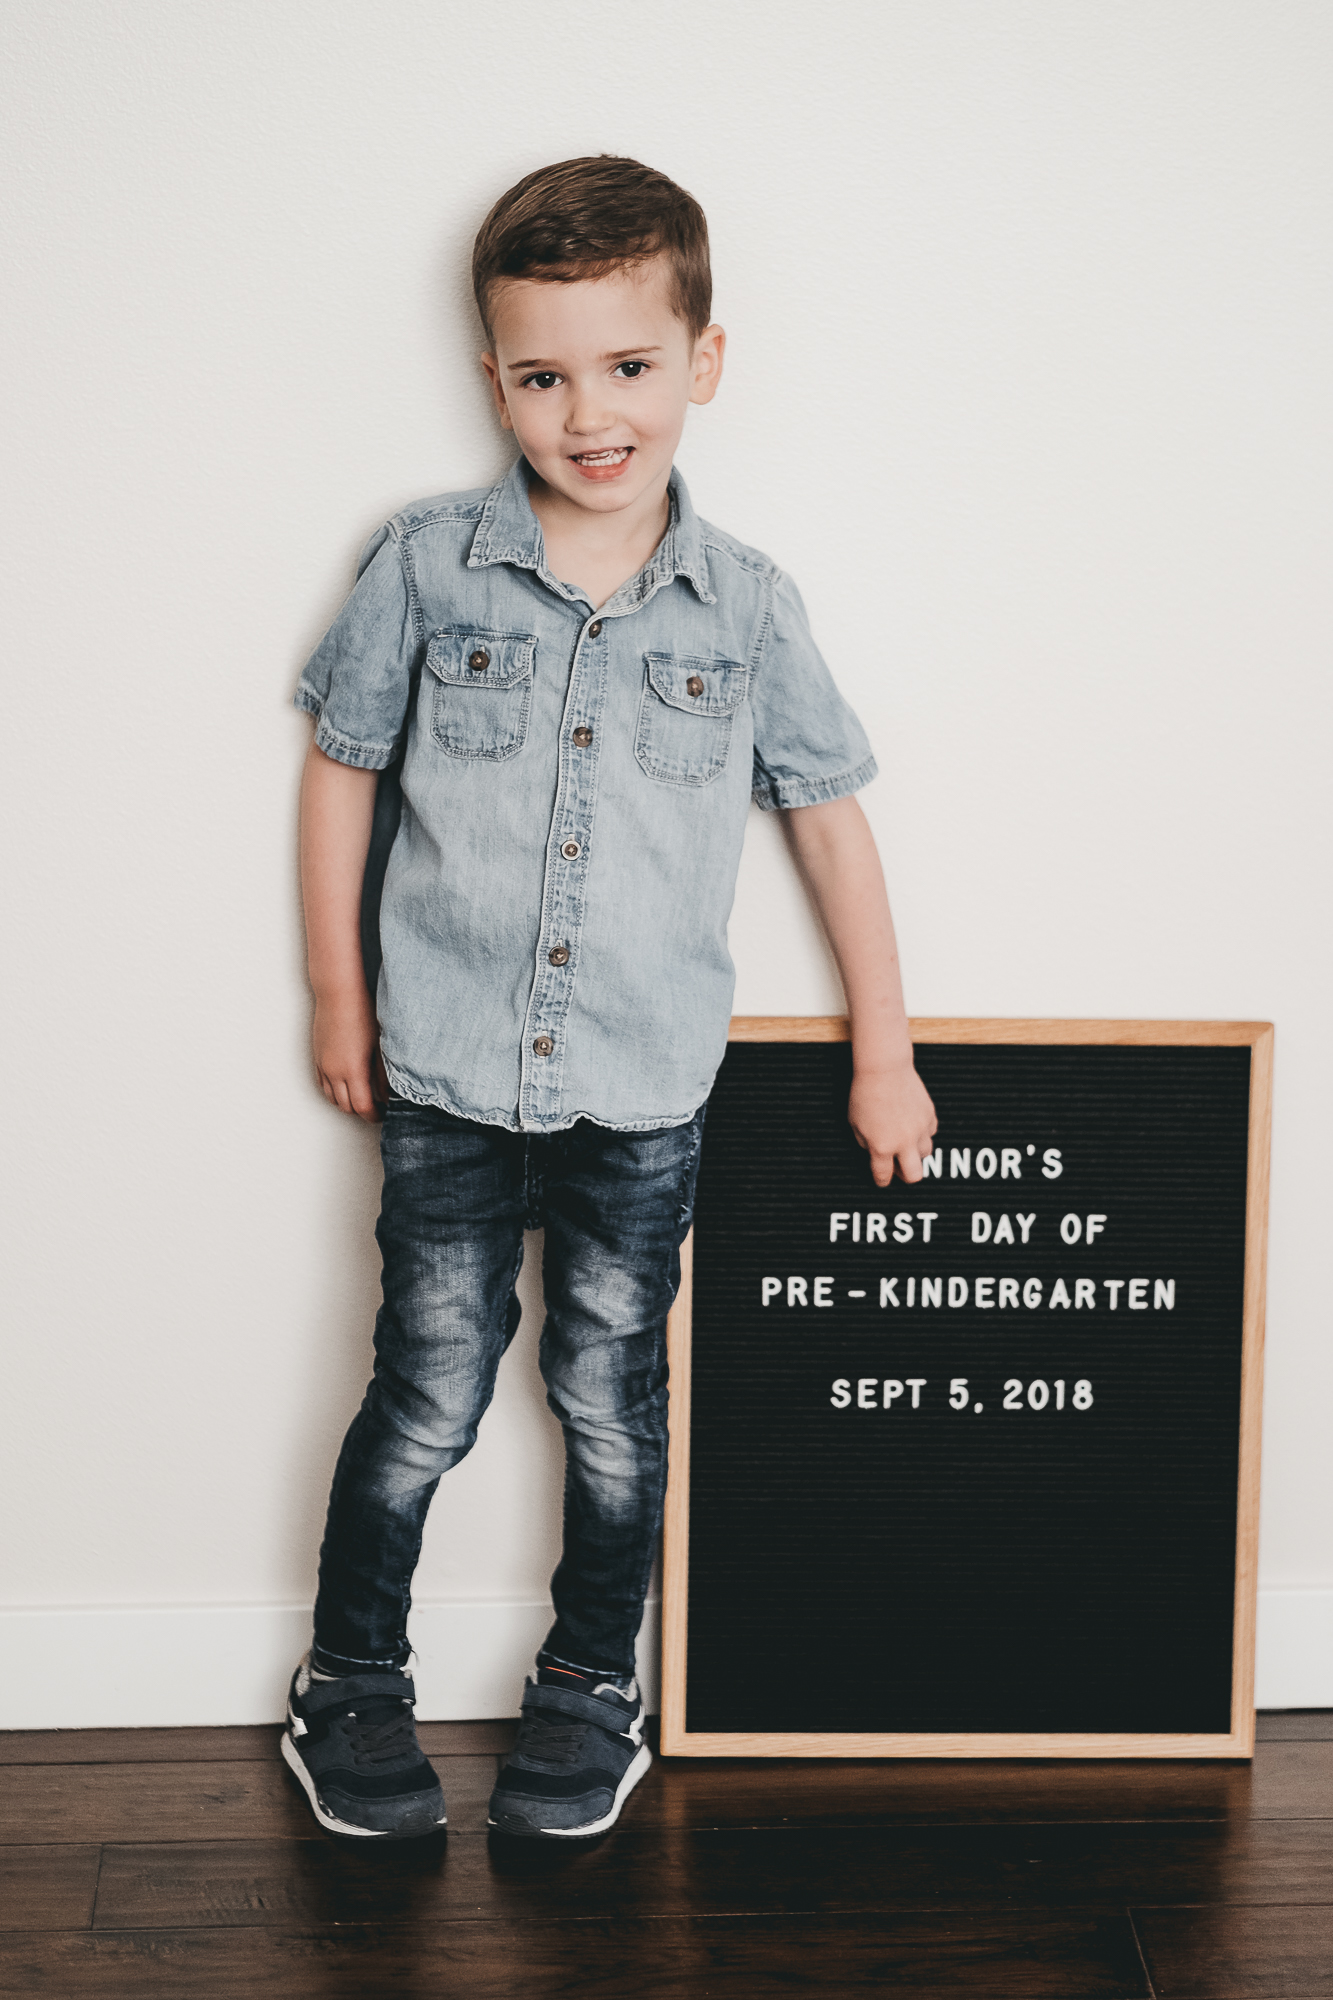 connors first day of pre-k-6.jpg